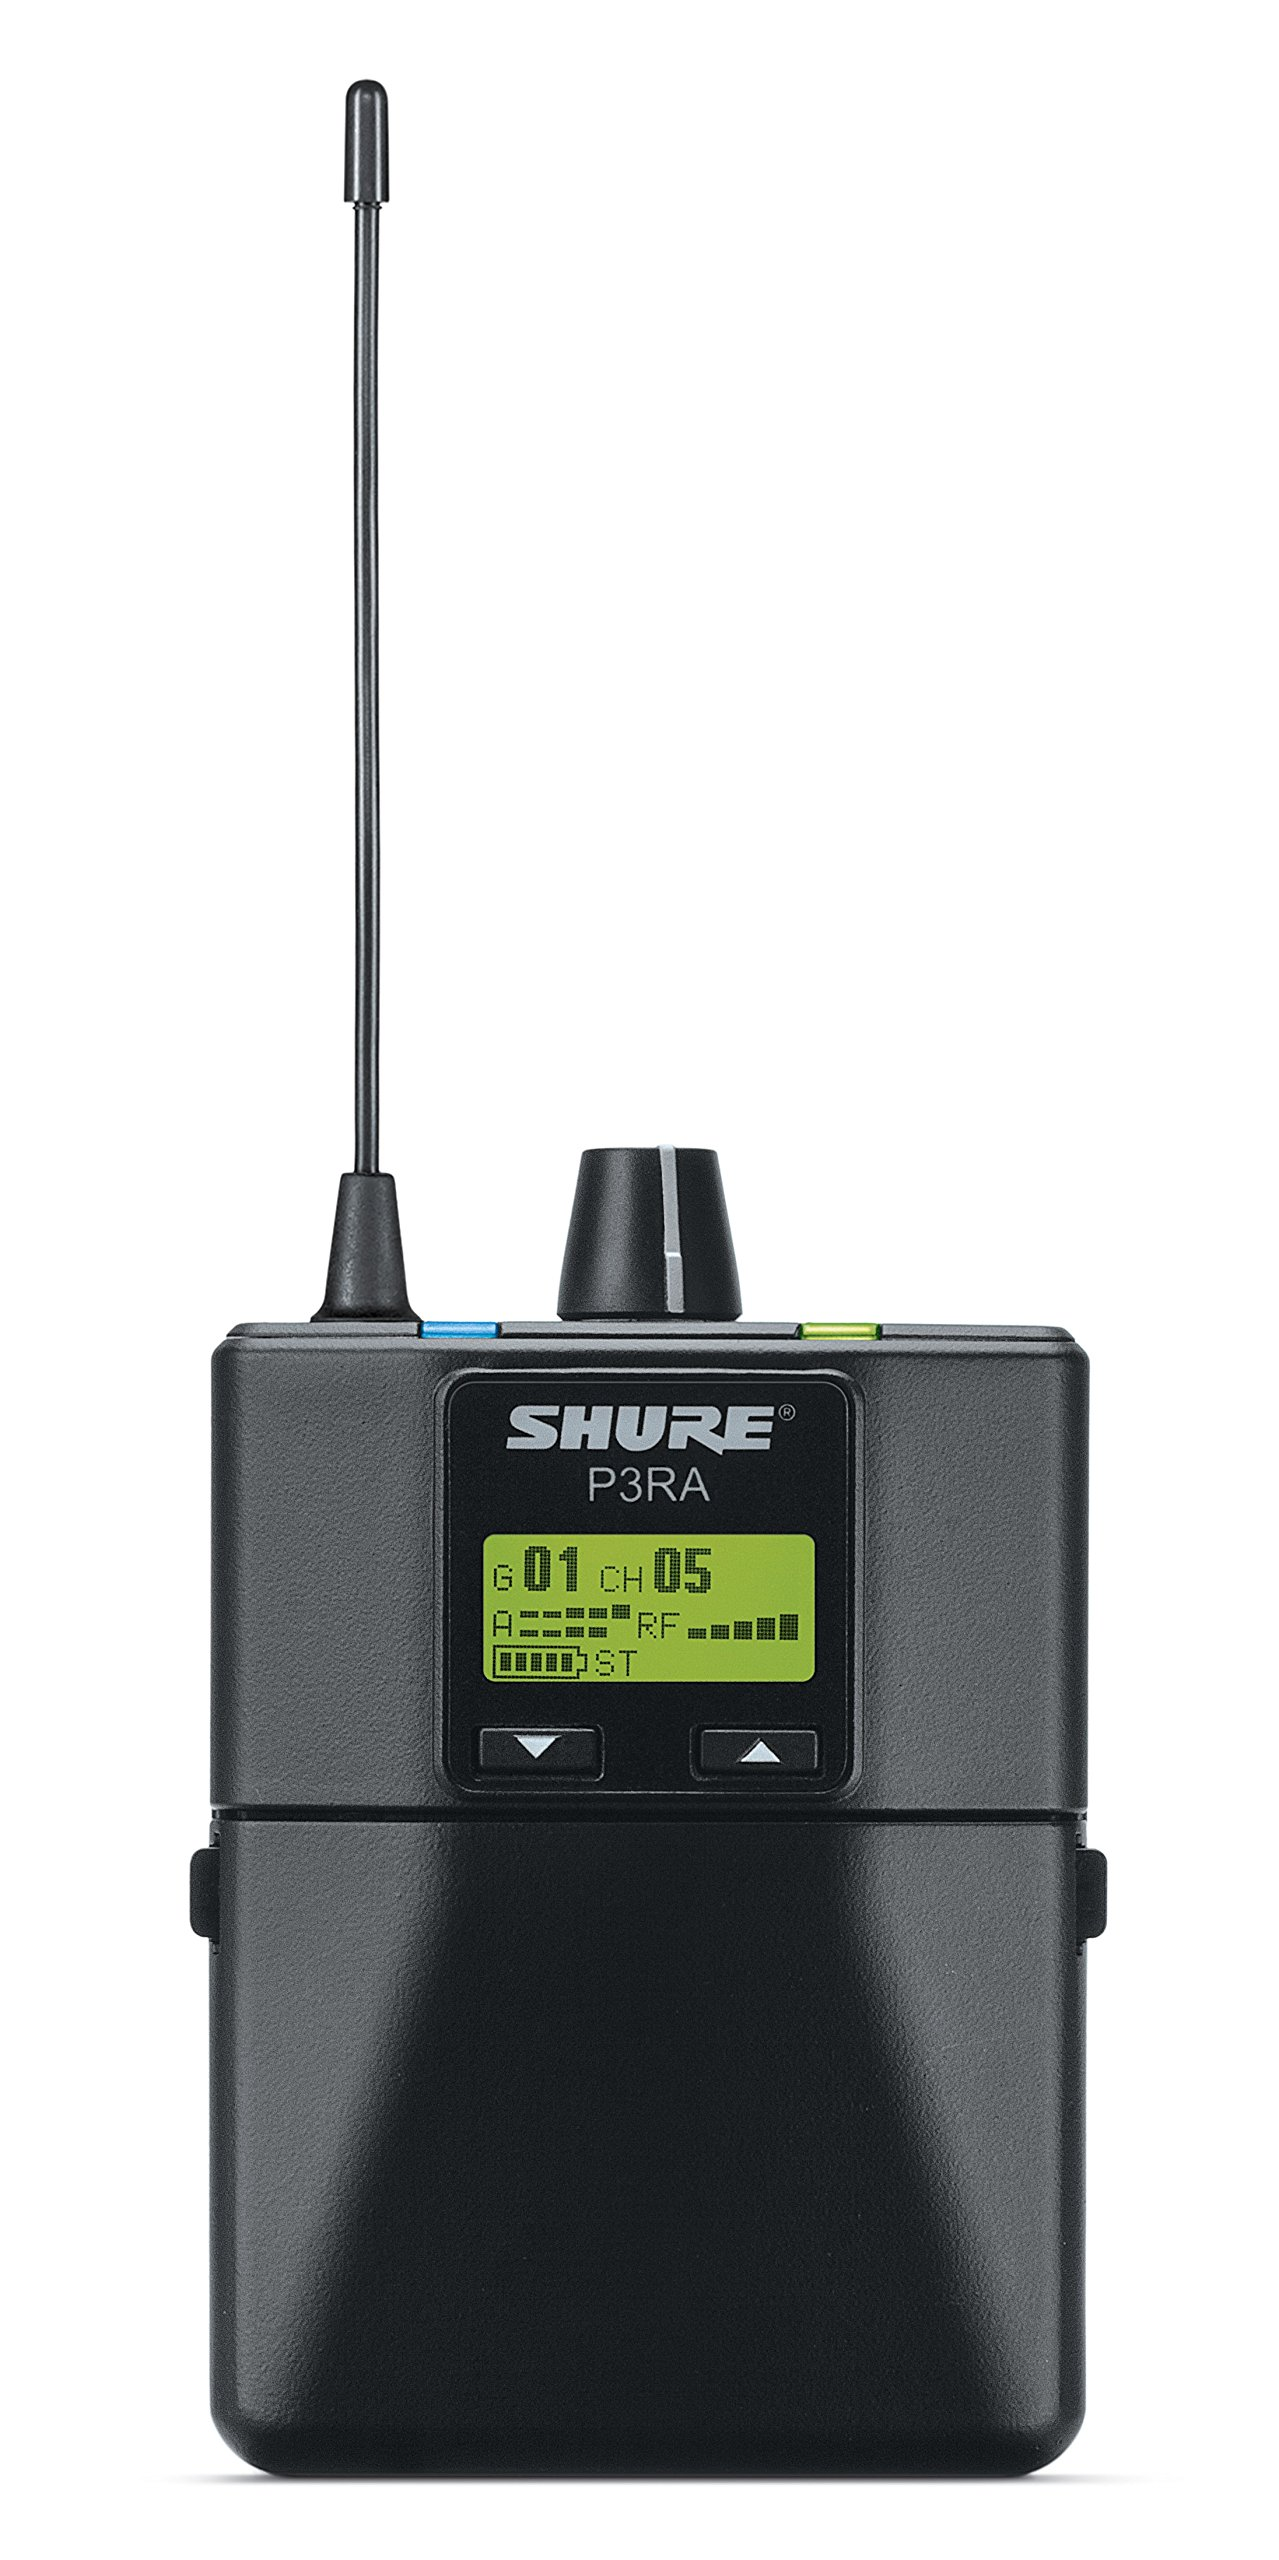 Shure P3RA Professional Bodypack Receiver for PSM300 Stereo Personal Monitor System, J13